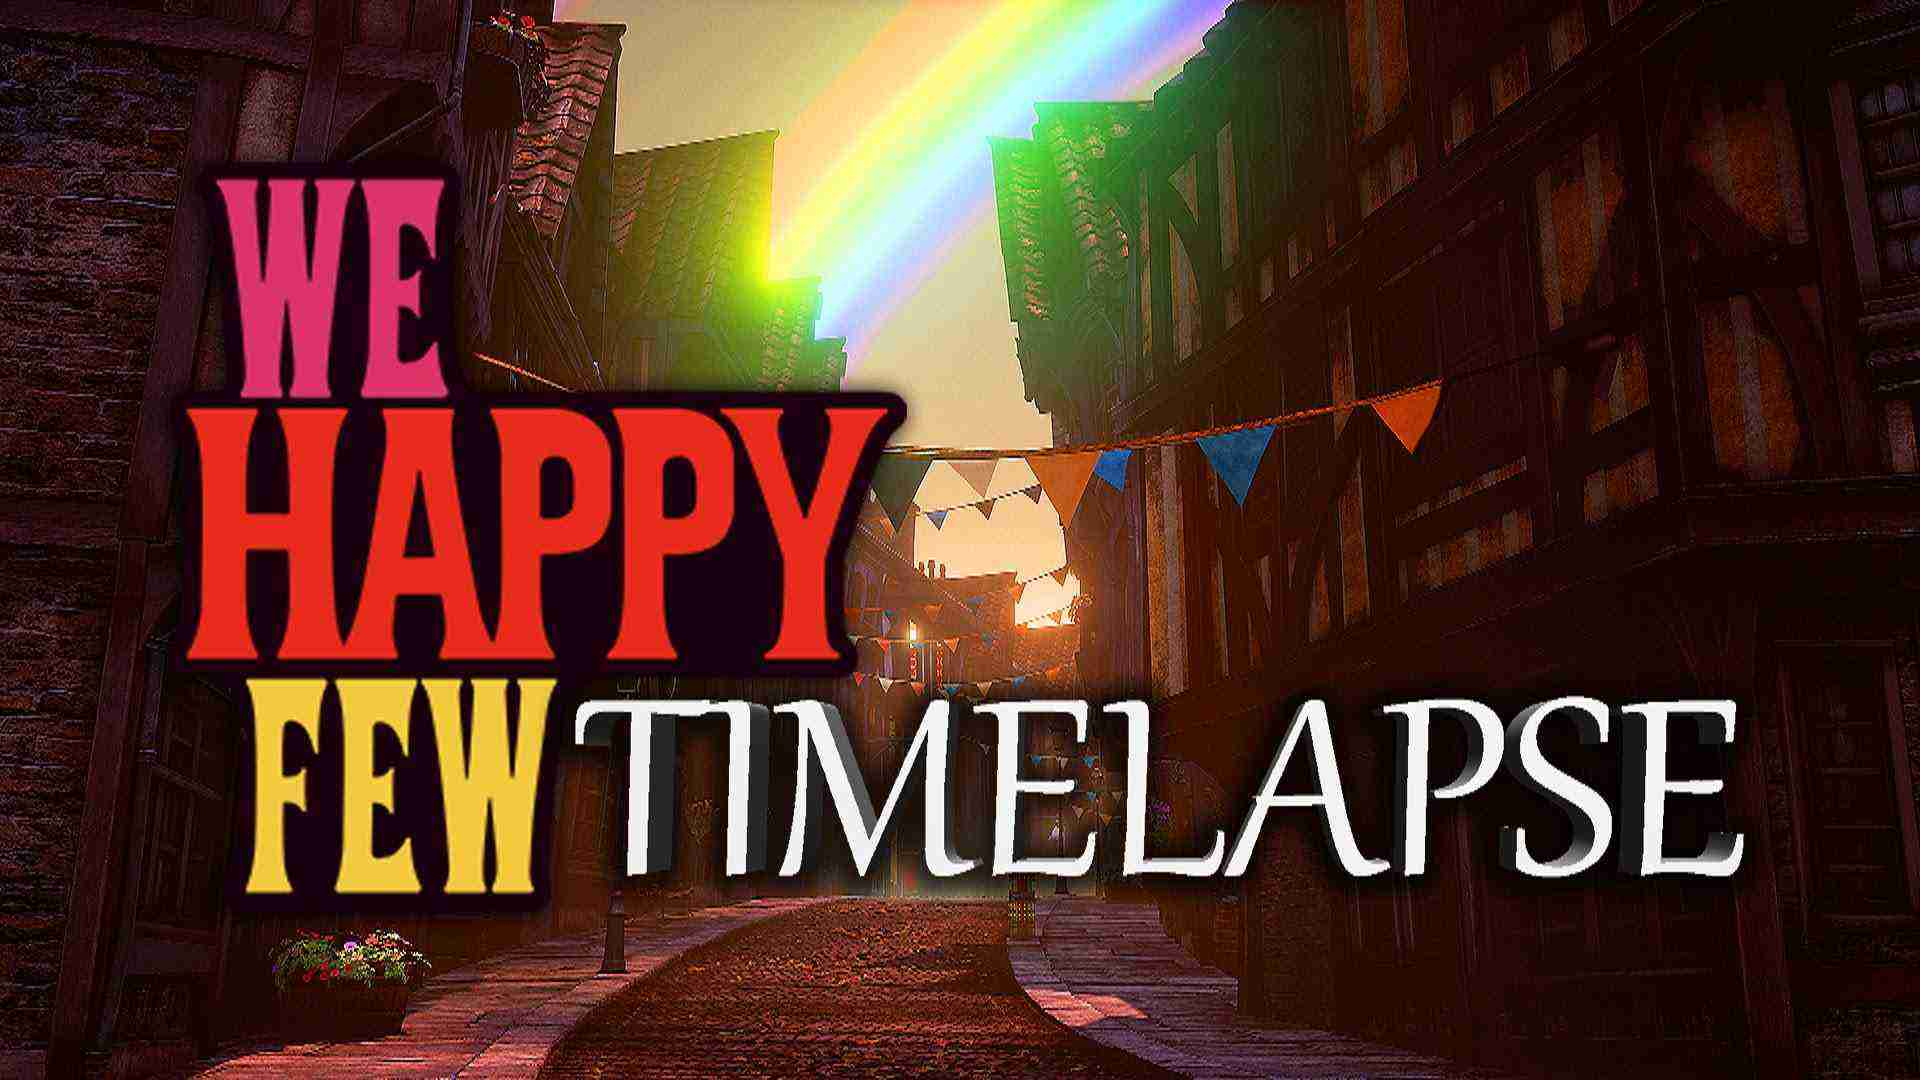 We Happy Few – Ethereal Timelapse